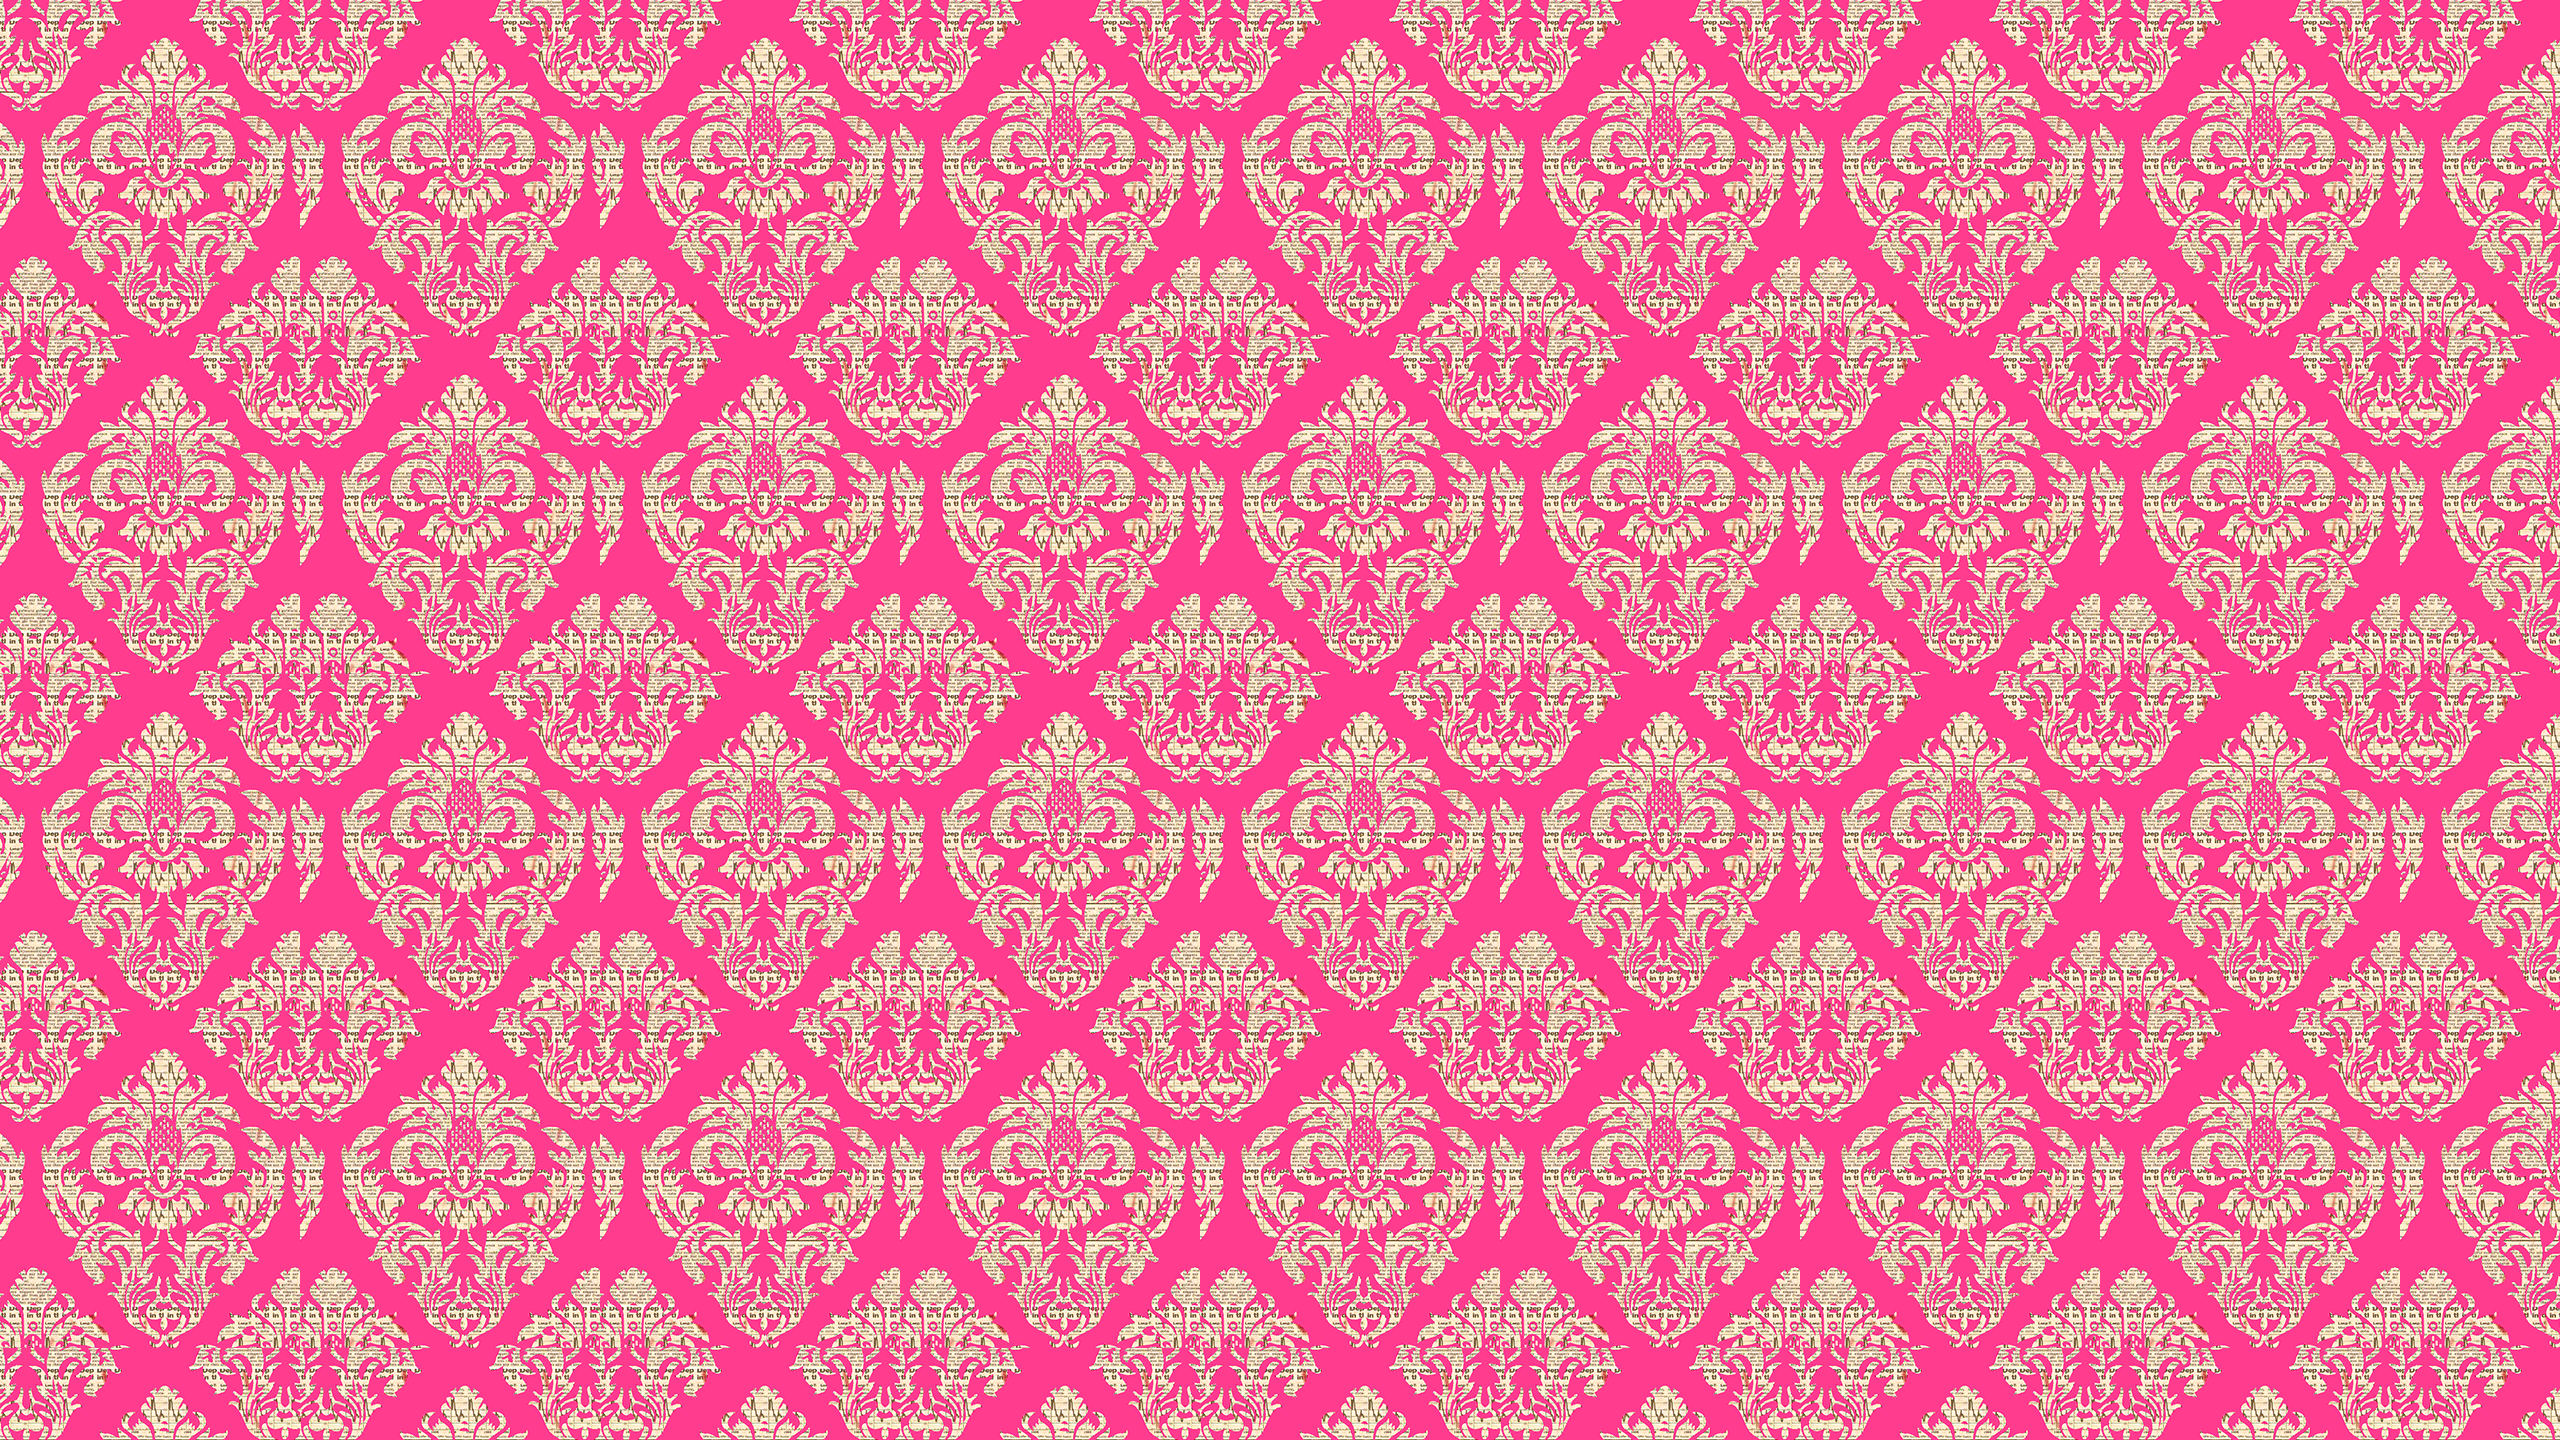 Wallpaper Damask Pink